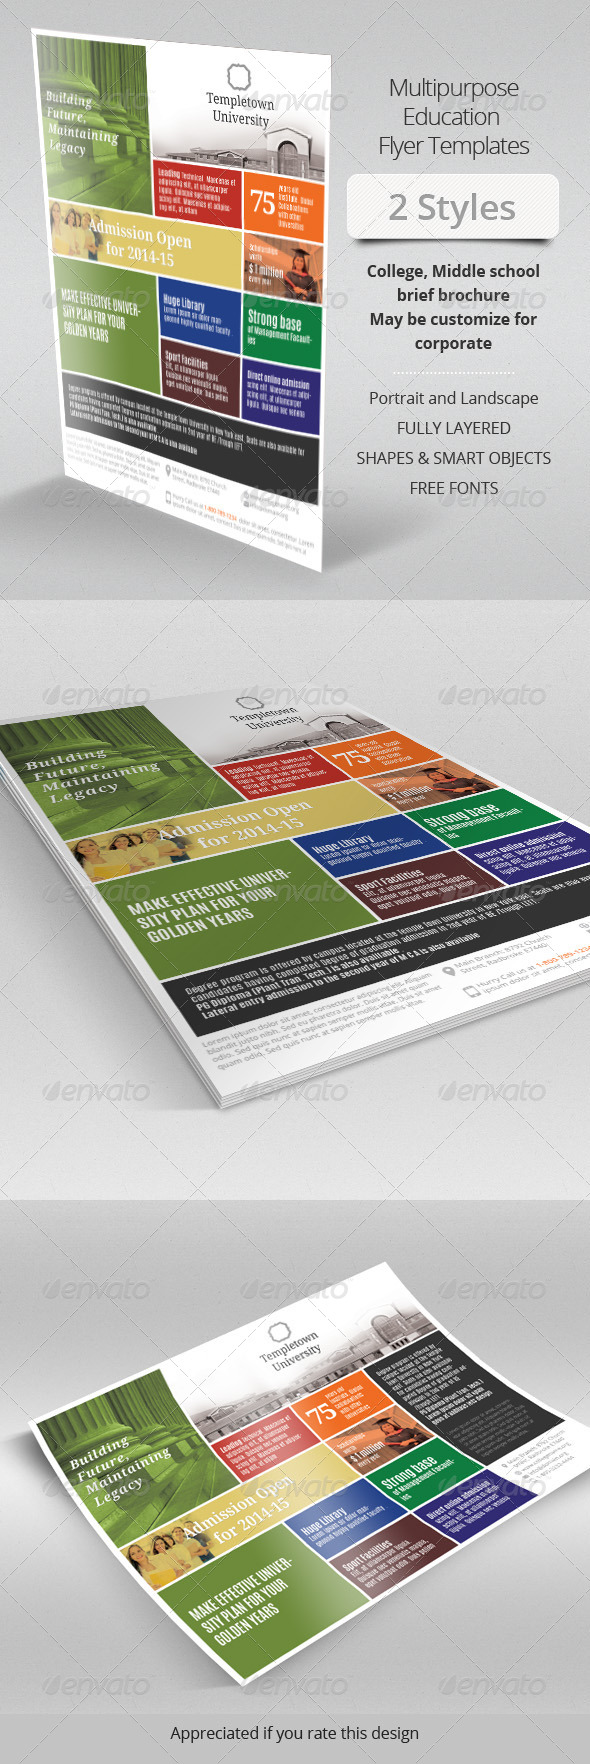 GraphicRiver Multipurpose Education Flyer 7767695